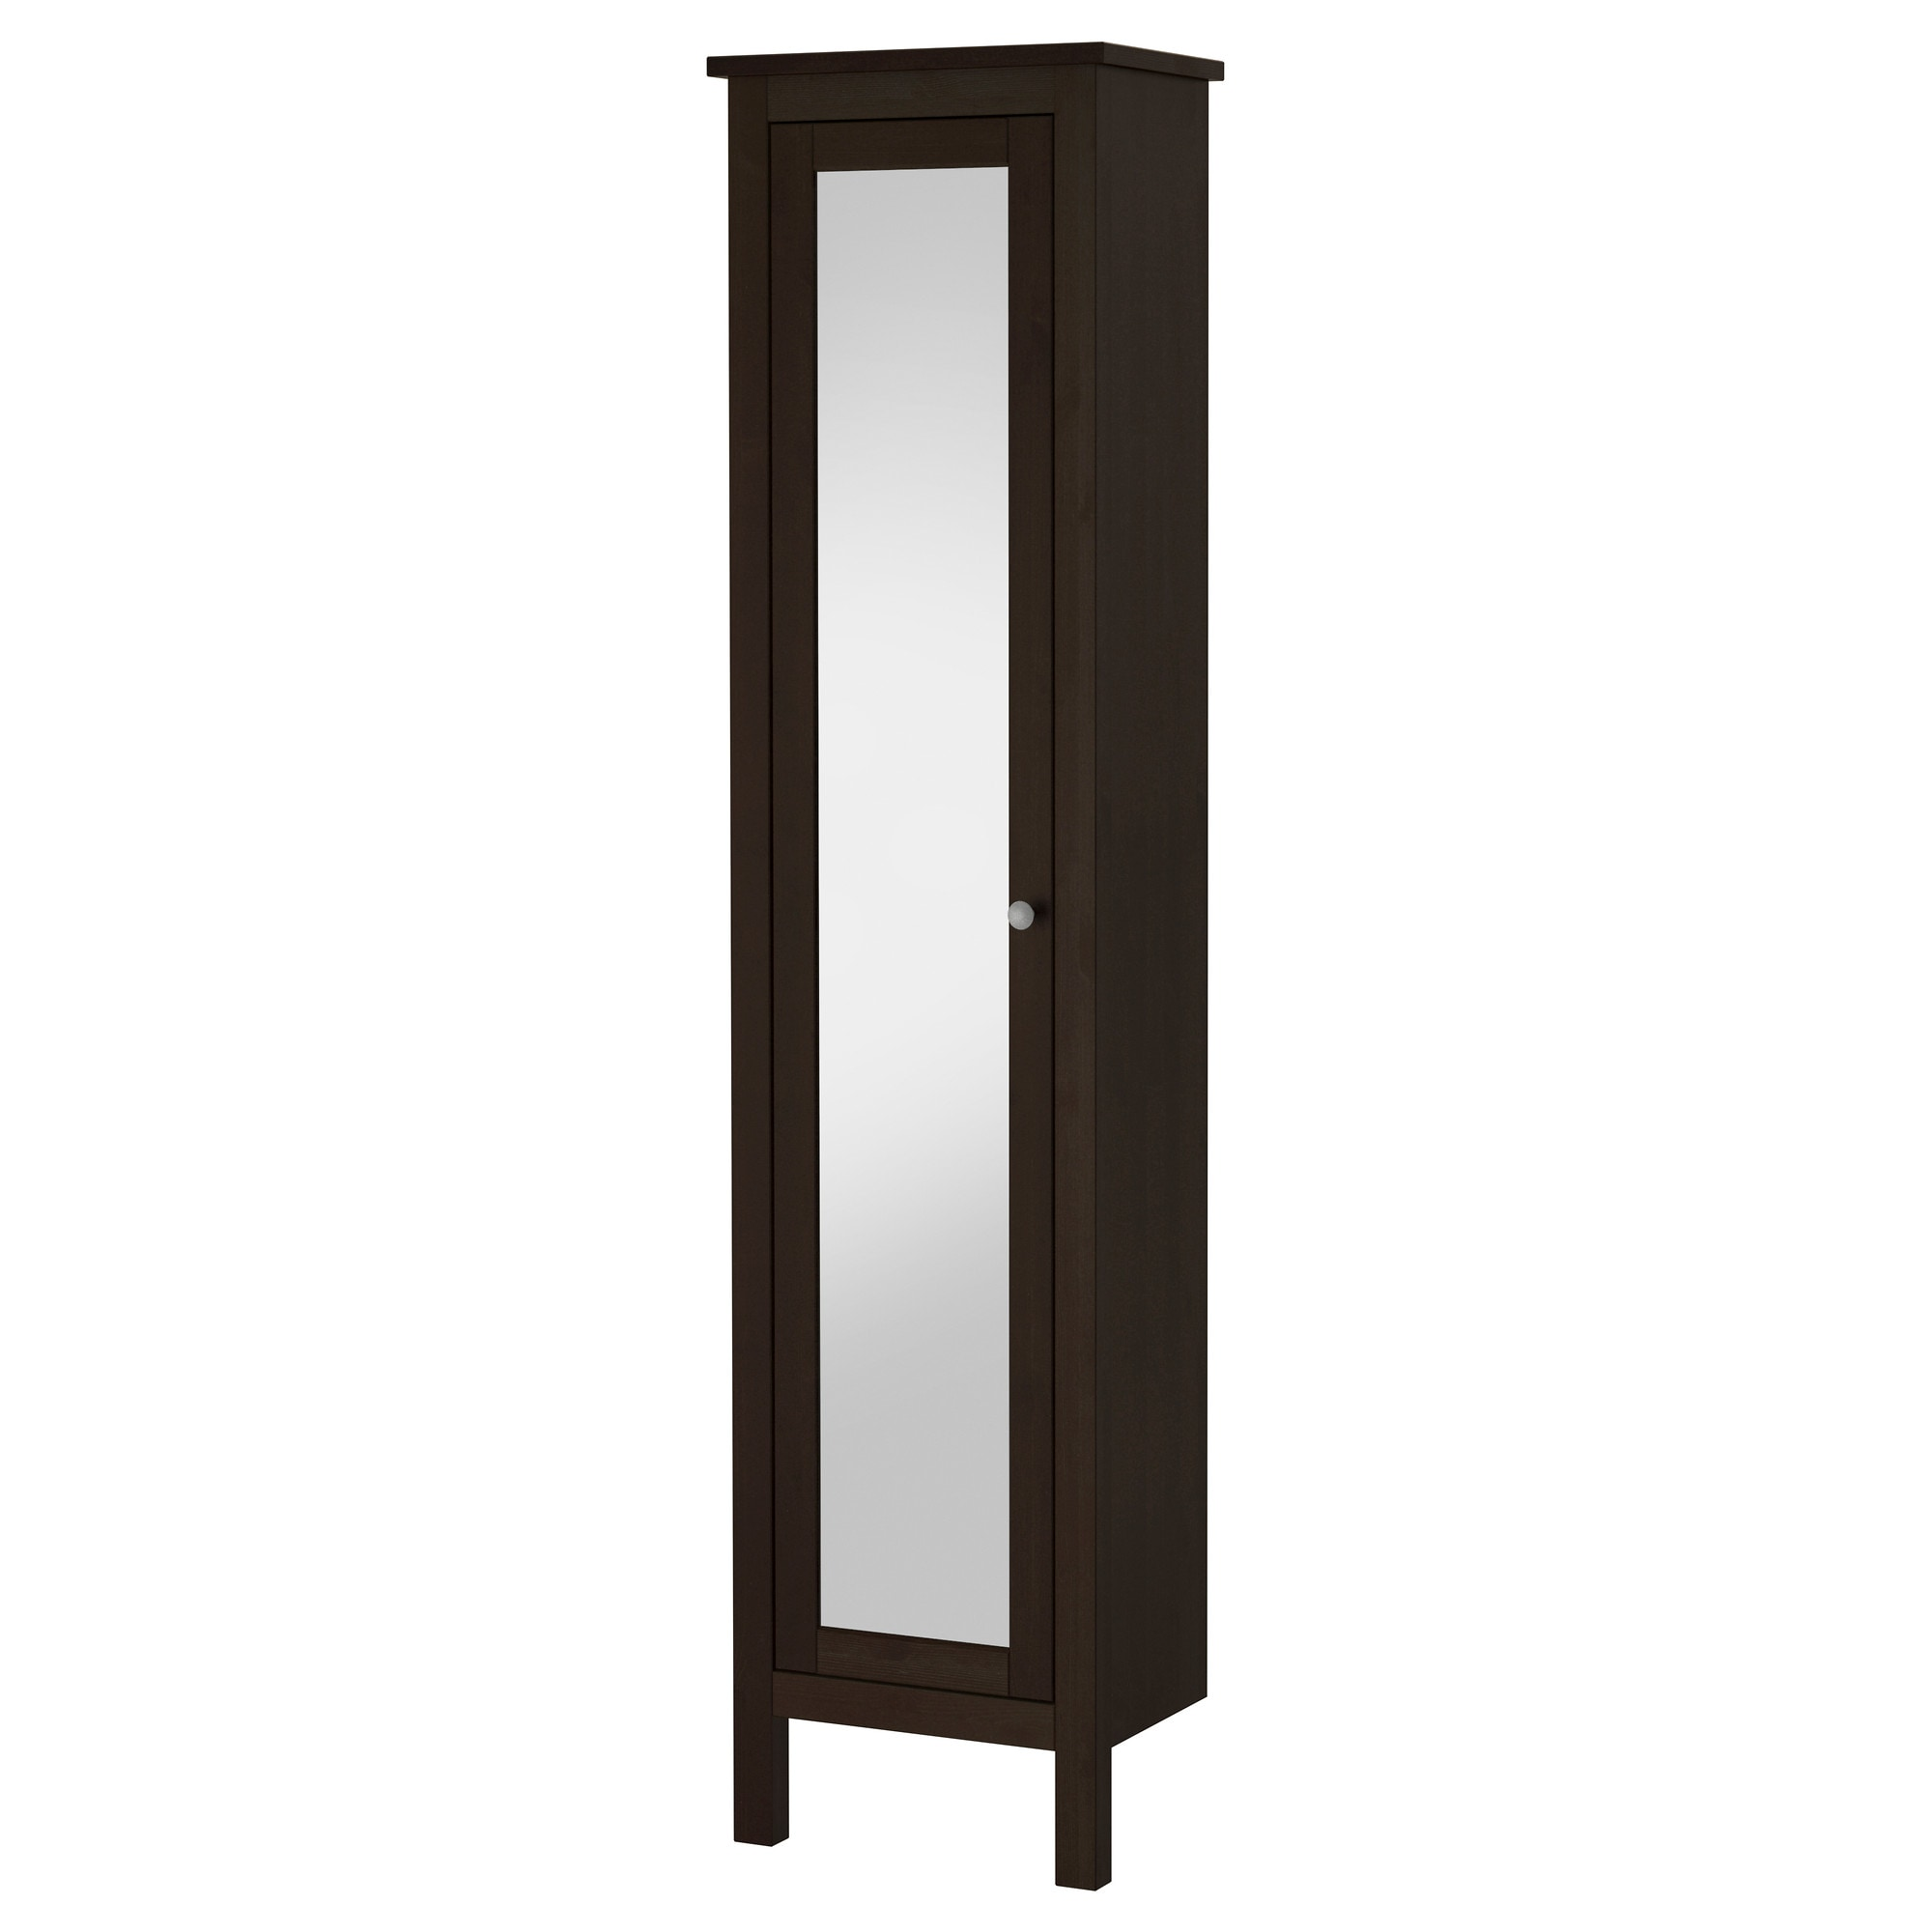 Bathroom mirrors with storage - Hemnes High Cabinet With Mirror Door Black Brown Stain Width 19 1